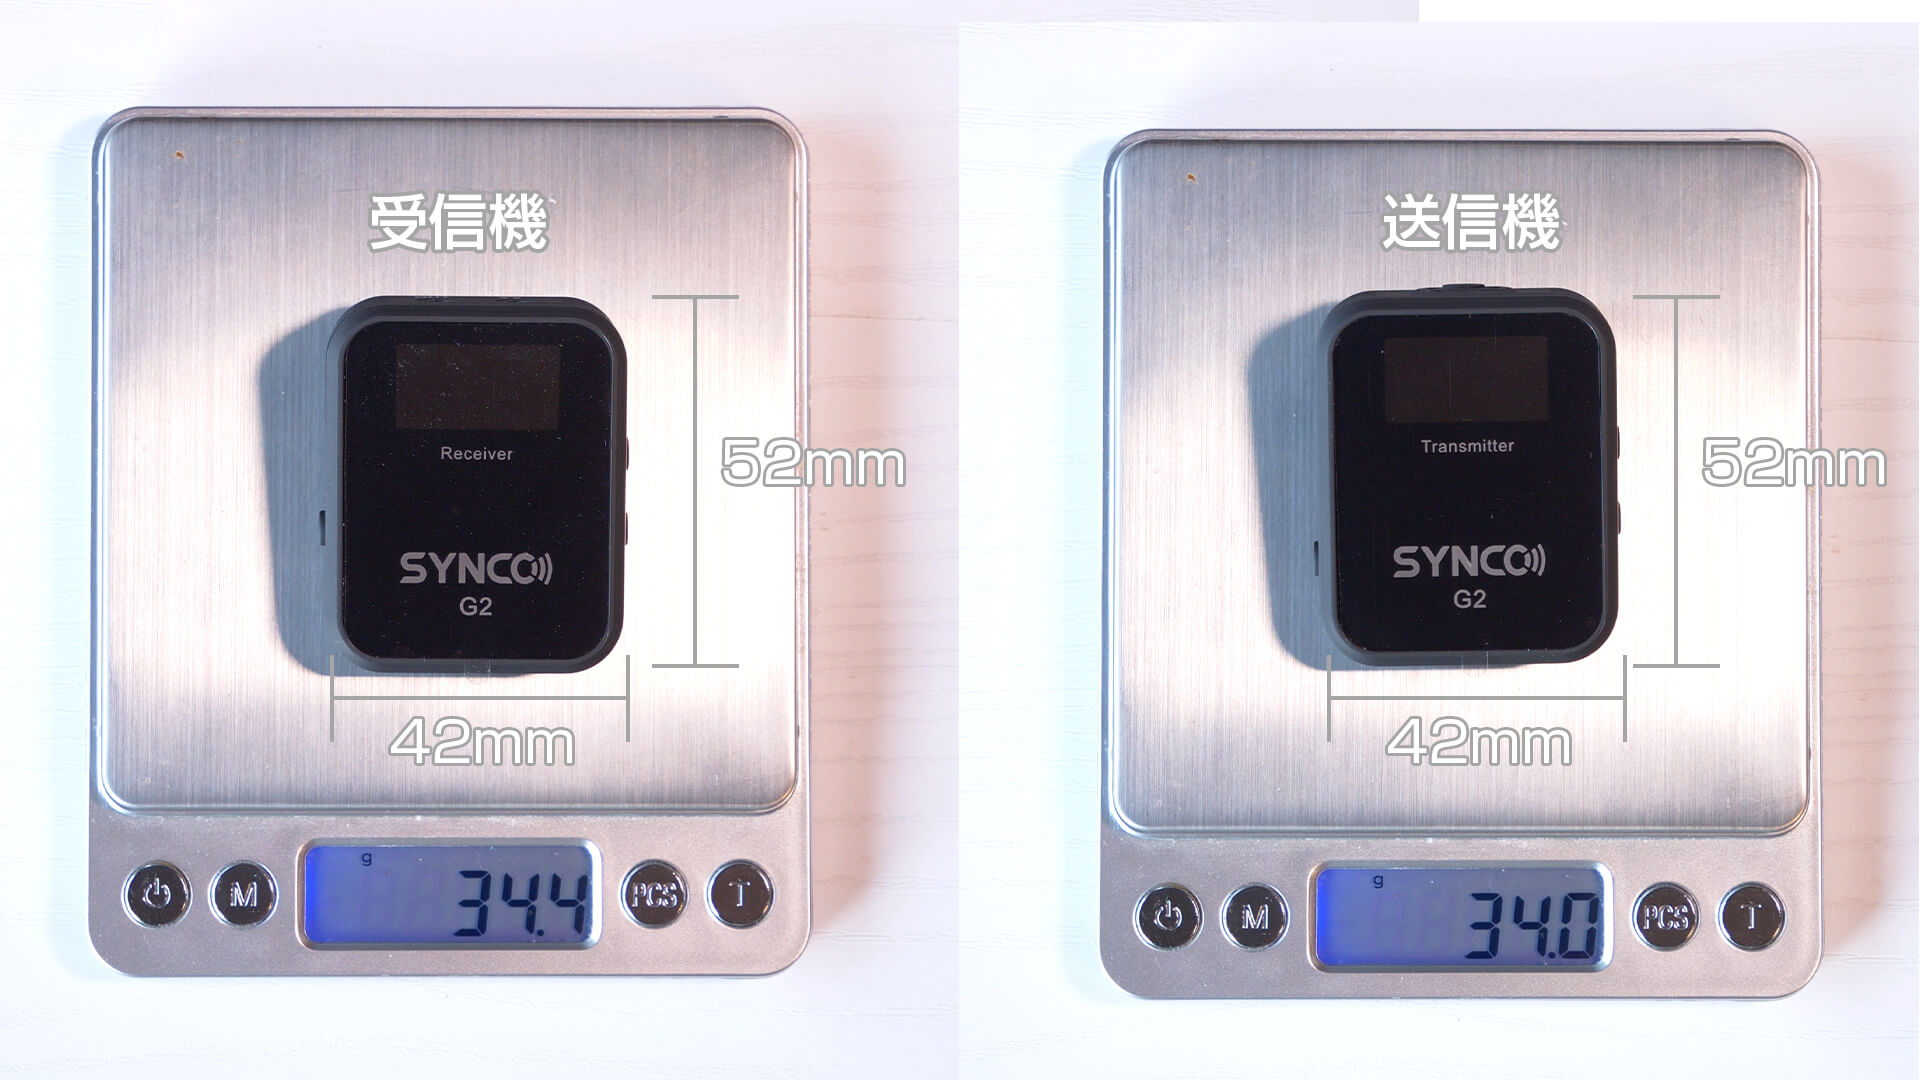 SYNCO G2(A2) の本体サイズ